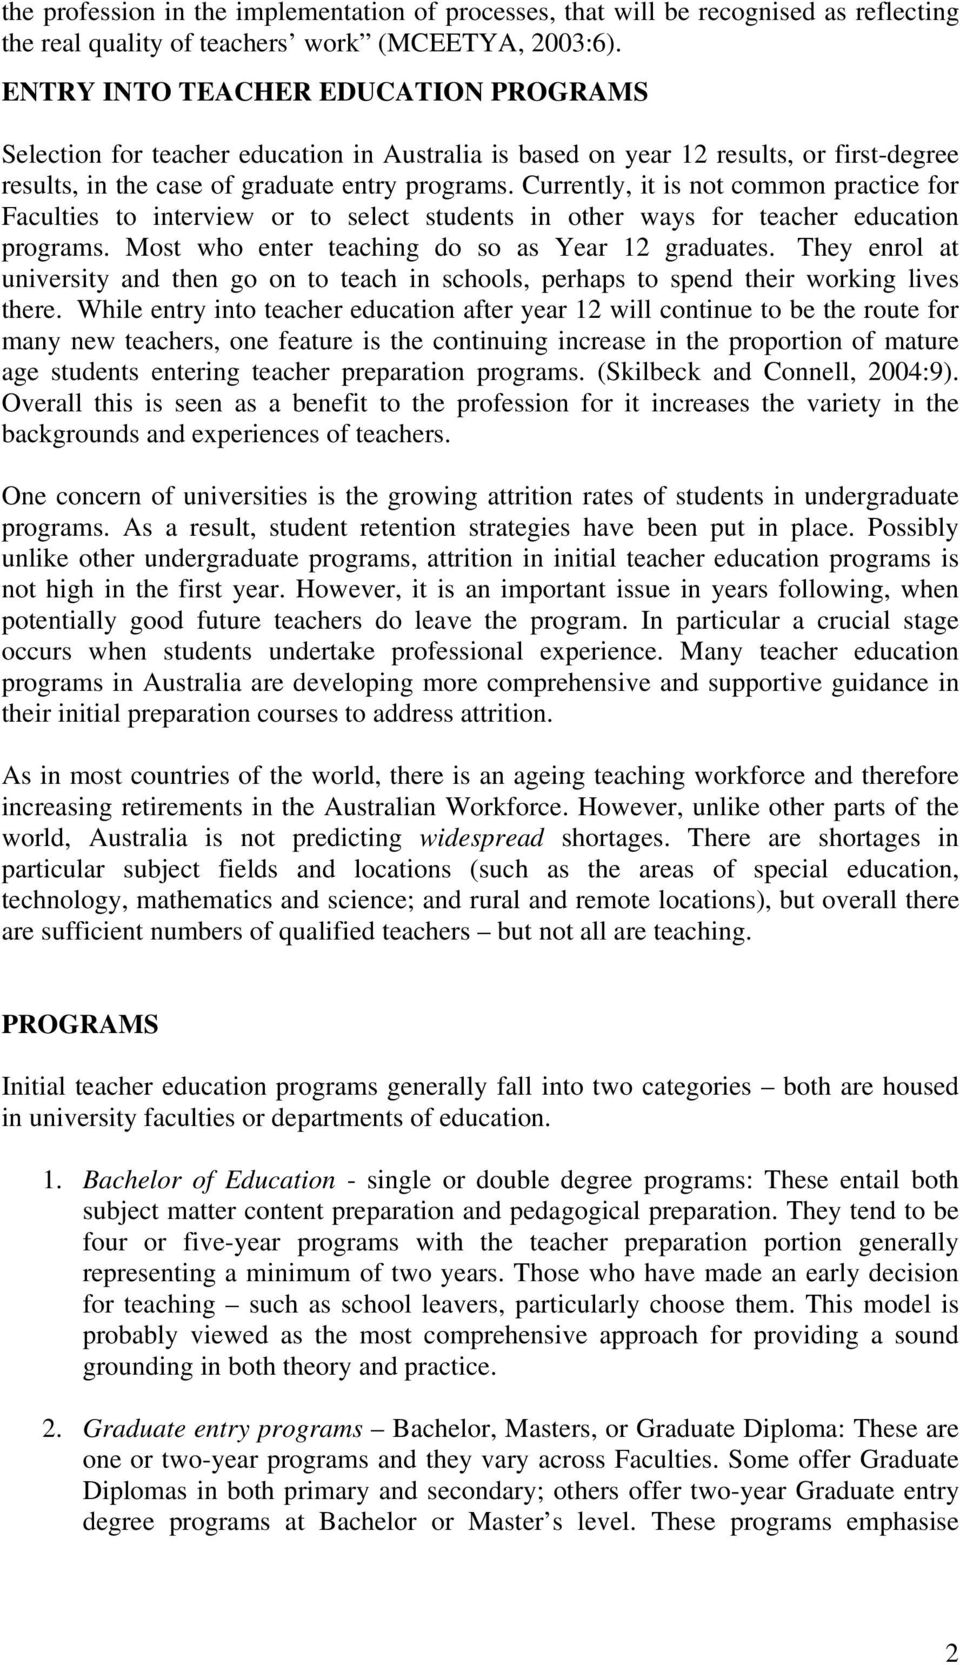 Currently, it is not common practice for Faculties to interview or to select students in other ways for teacher education programs. Most who enter teaching do so as Year 12 graduates.